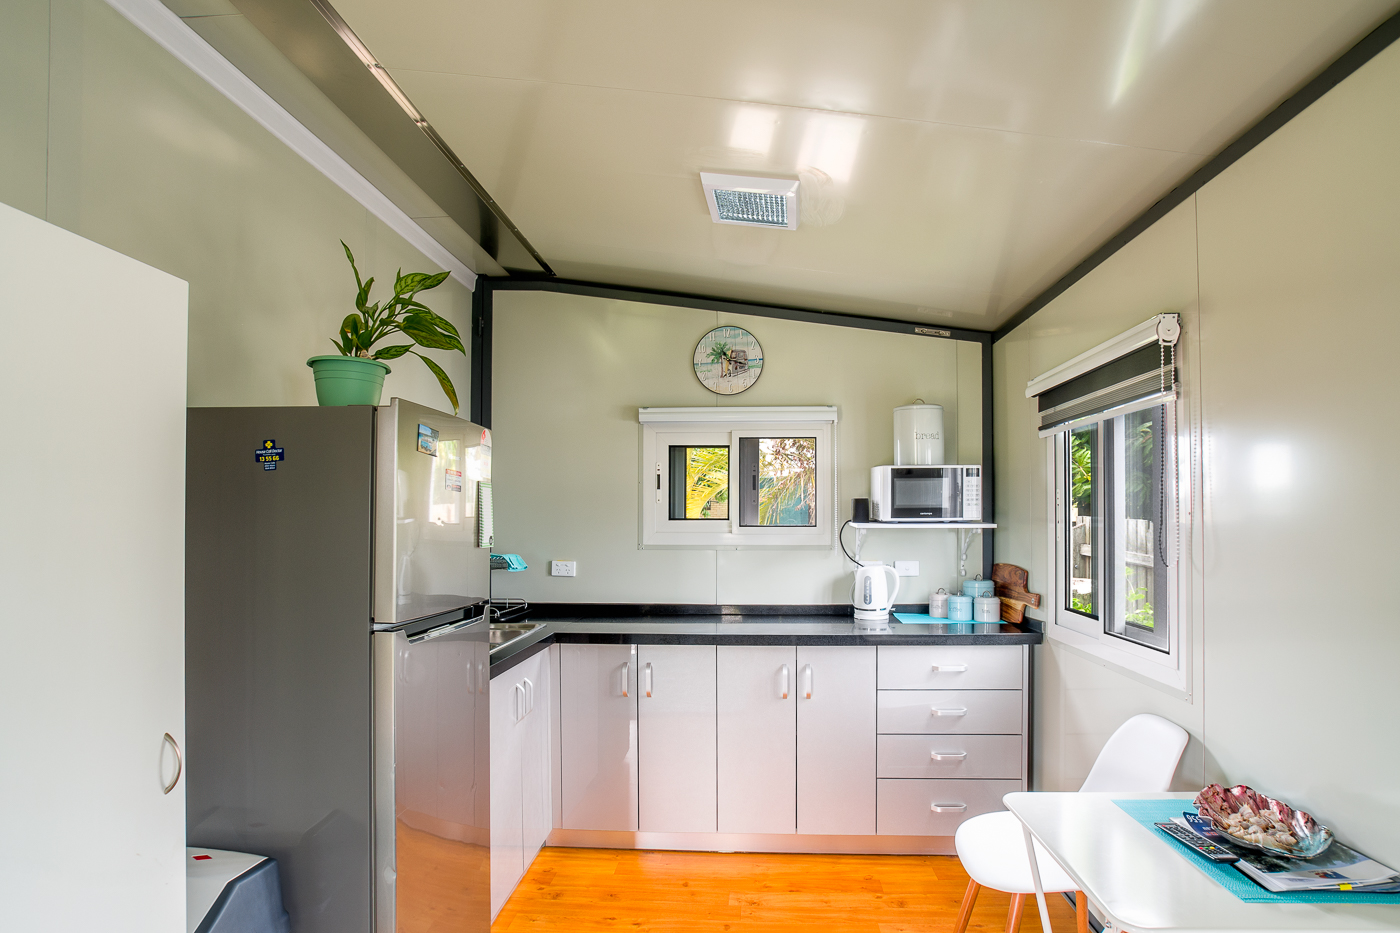 The Keppel 1 Bedroom Granny Flat internal view kitchen